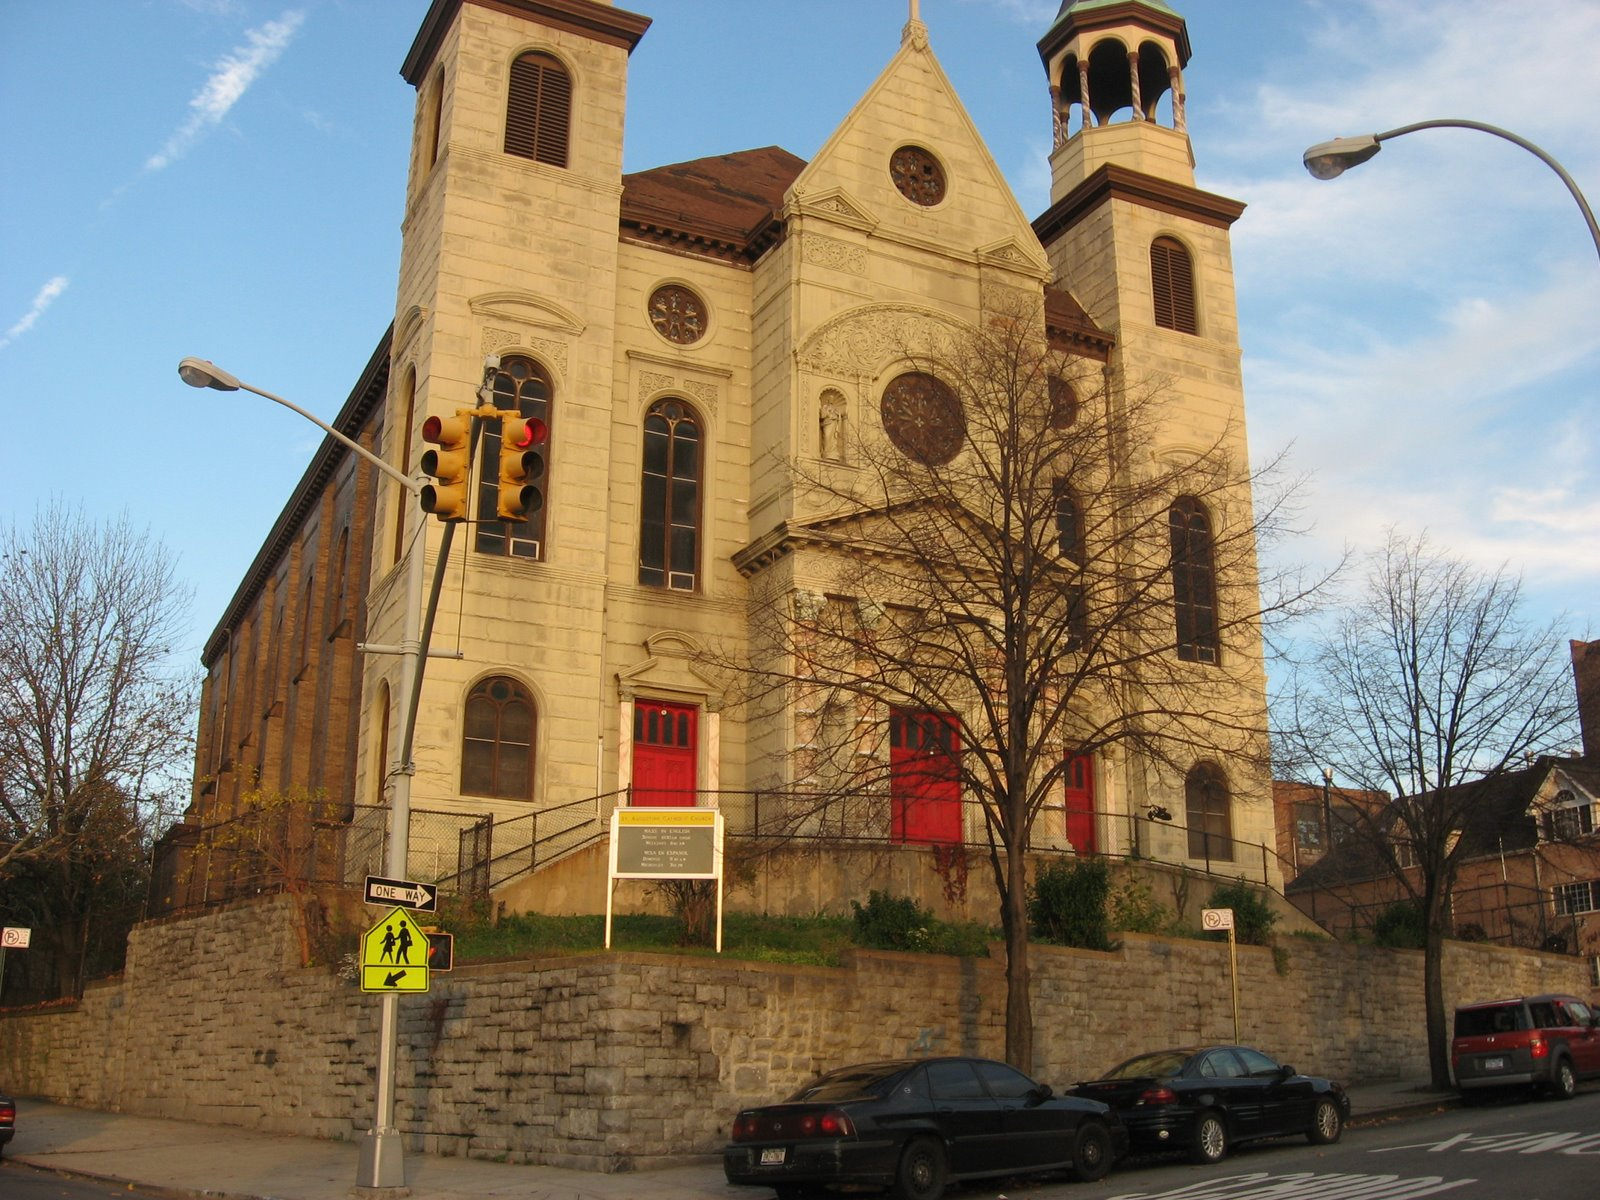 A more recent of Saint Augustine Church, pre-demolition, circa 2010s. (Image from the BronxCatholic blog)